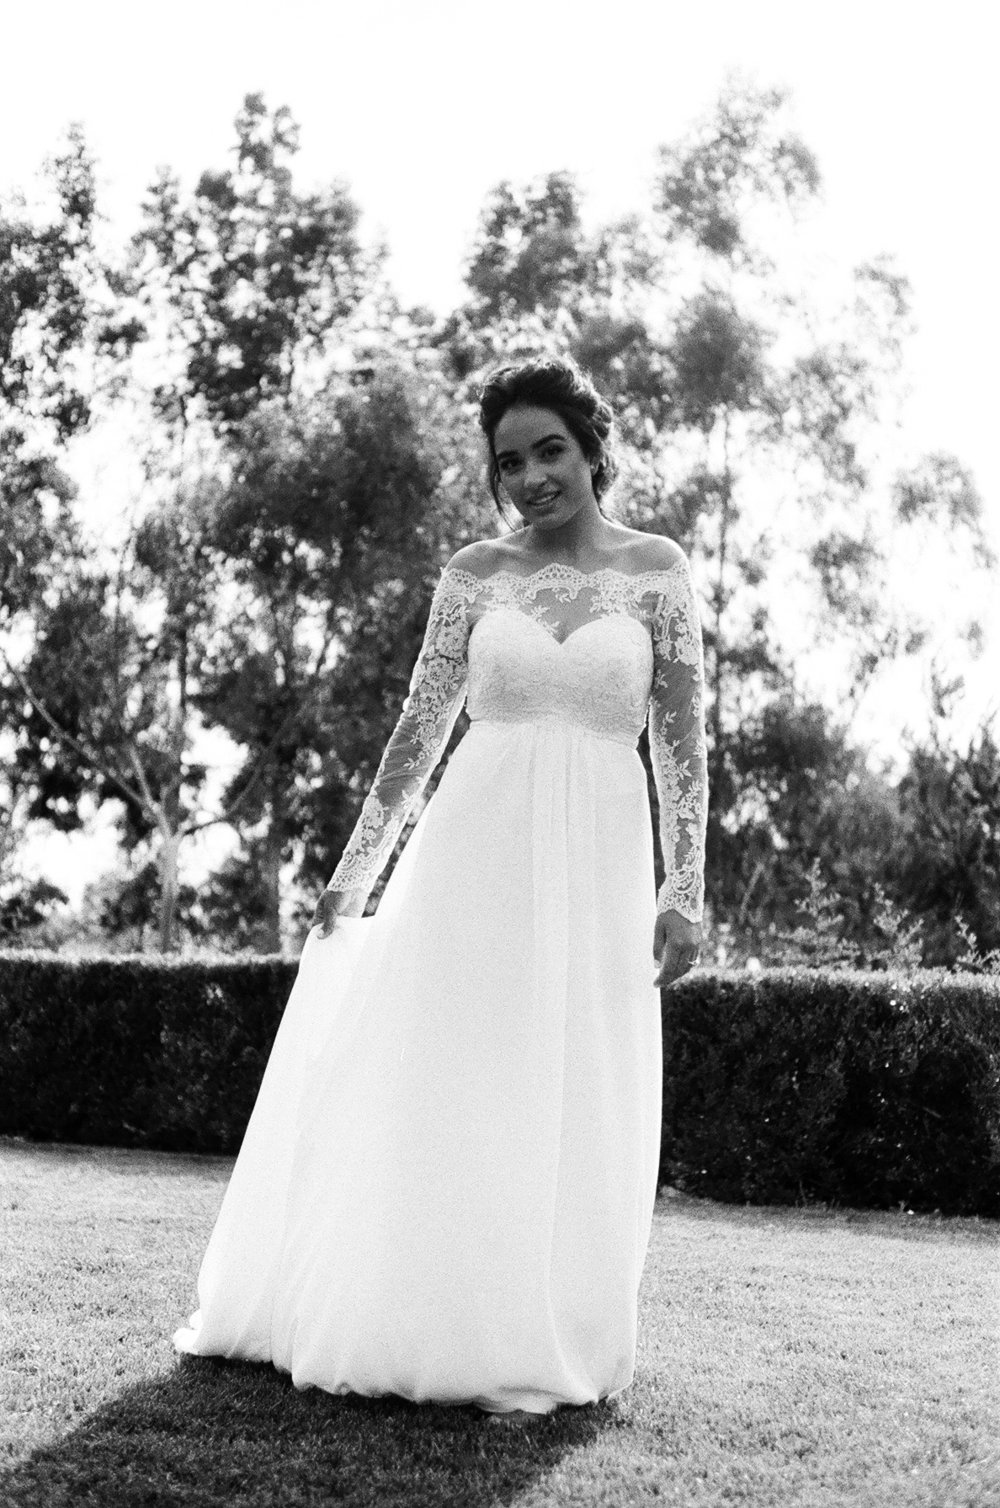 black and white 35mm film photograph of bride Posing in her wedding dress Before the ceremony taken by Joseph Barber wedding photography newport beach